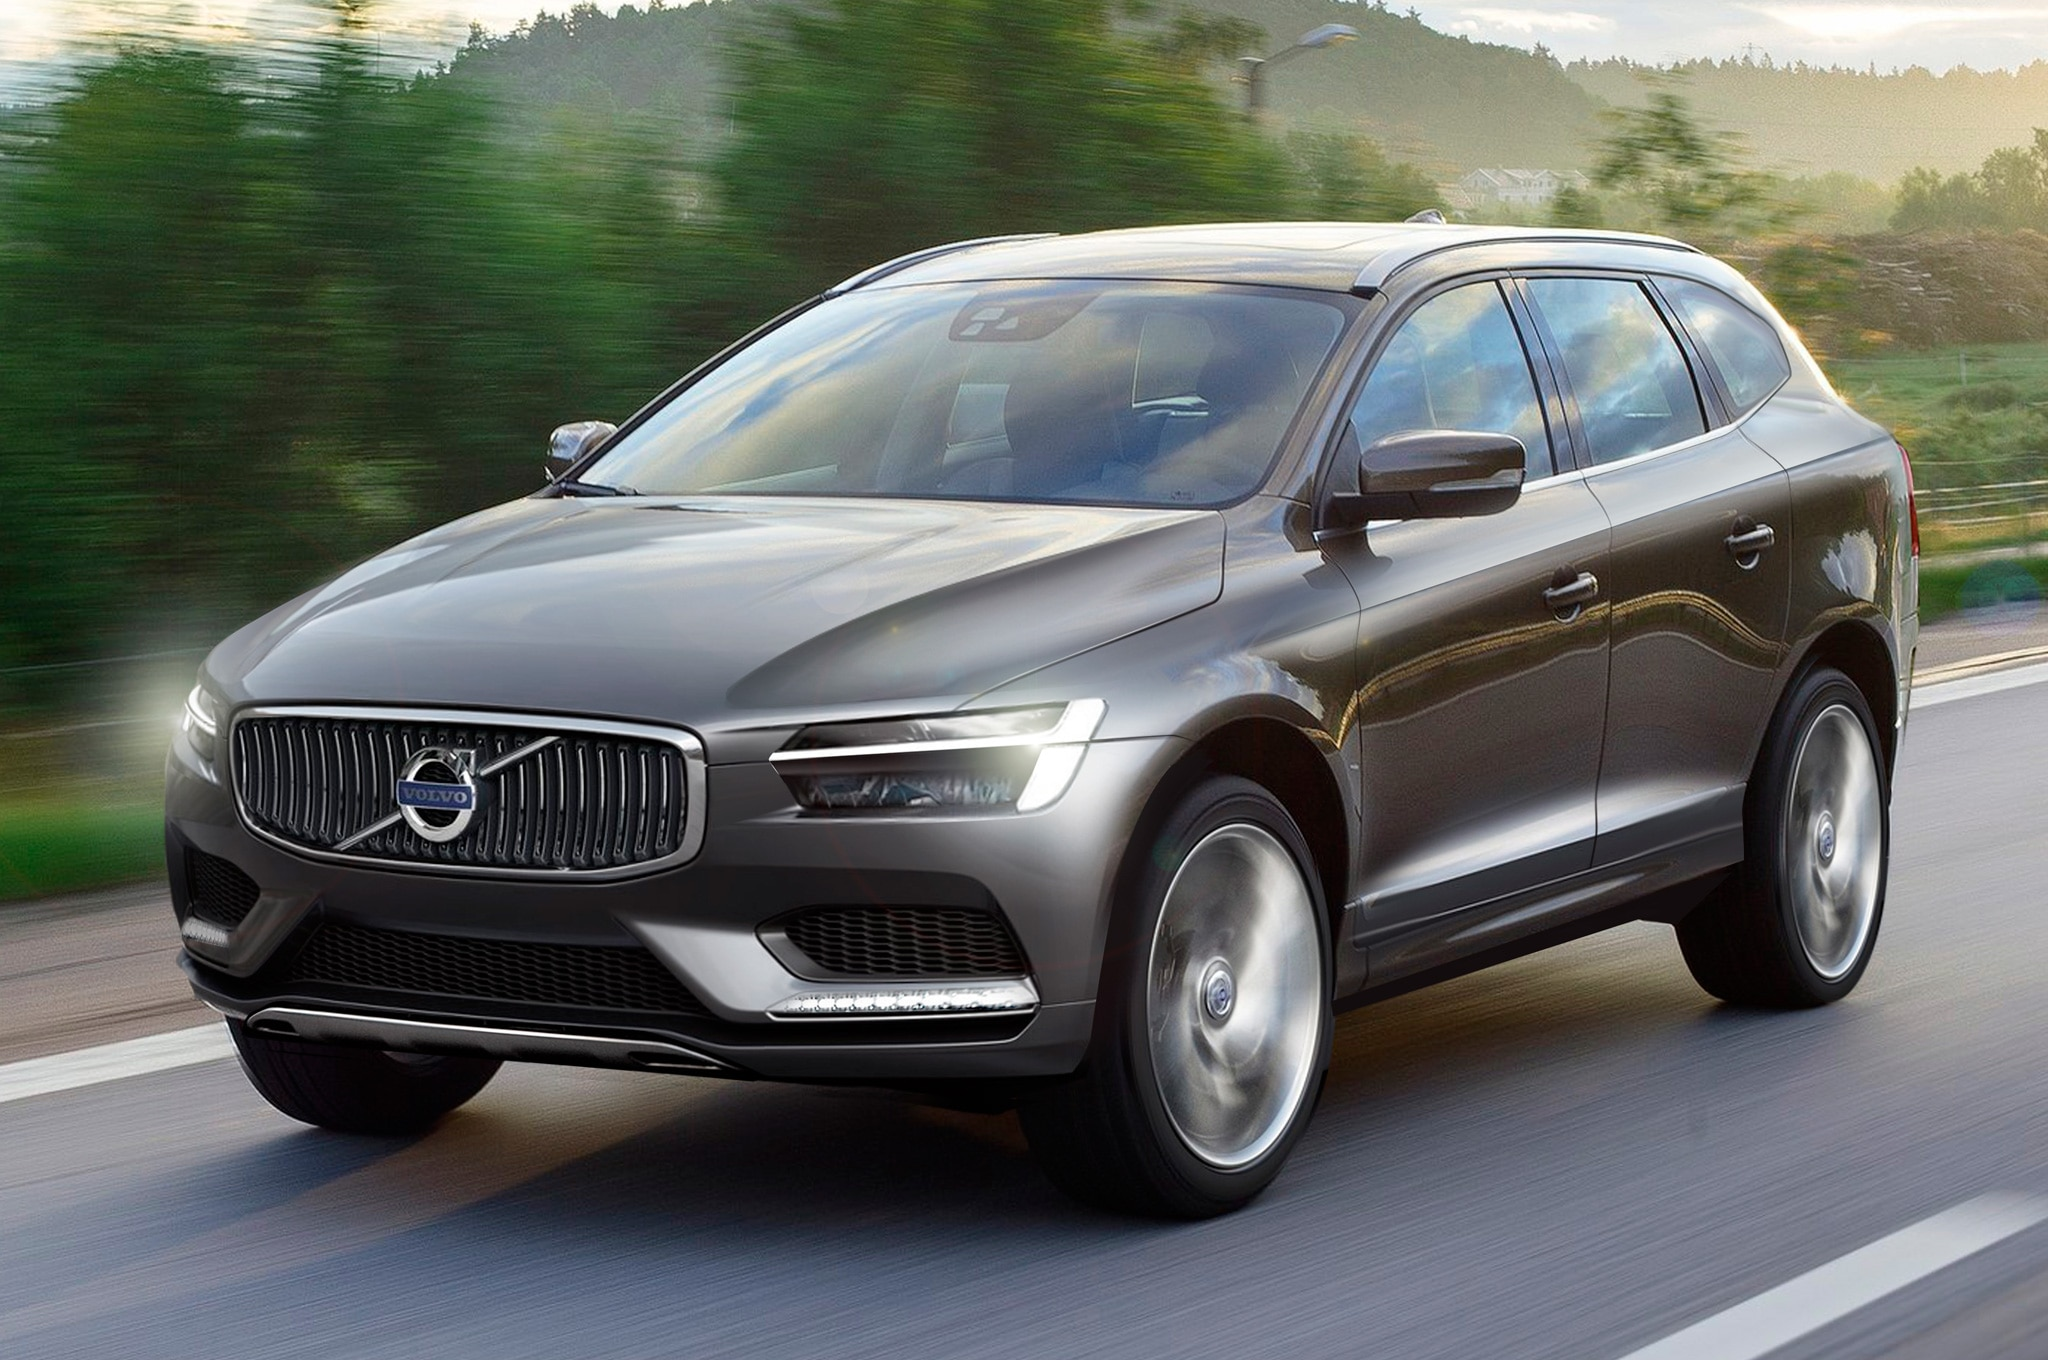 2015 Volvo XC90 Front Three Quarters View Rendering By Miroslav1